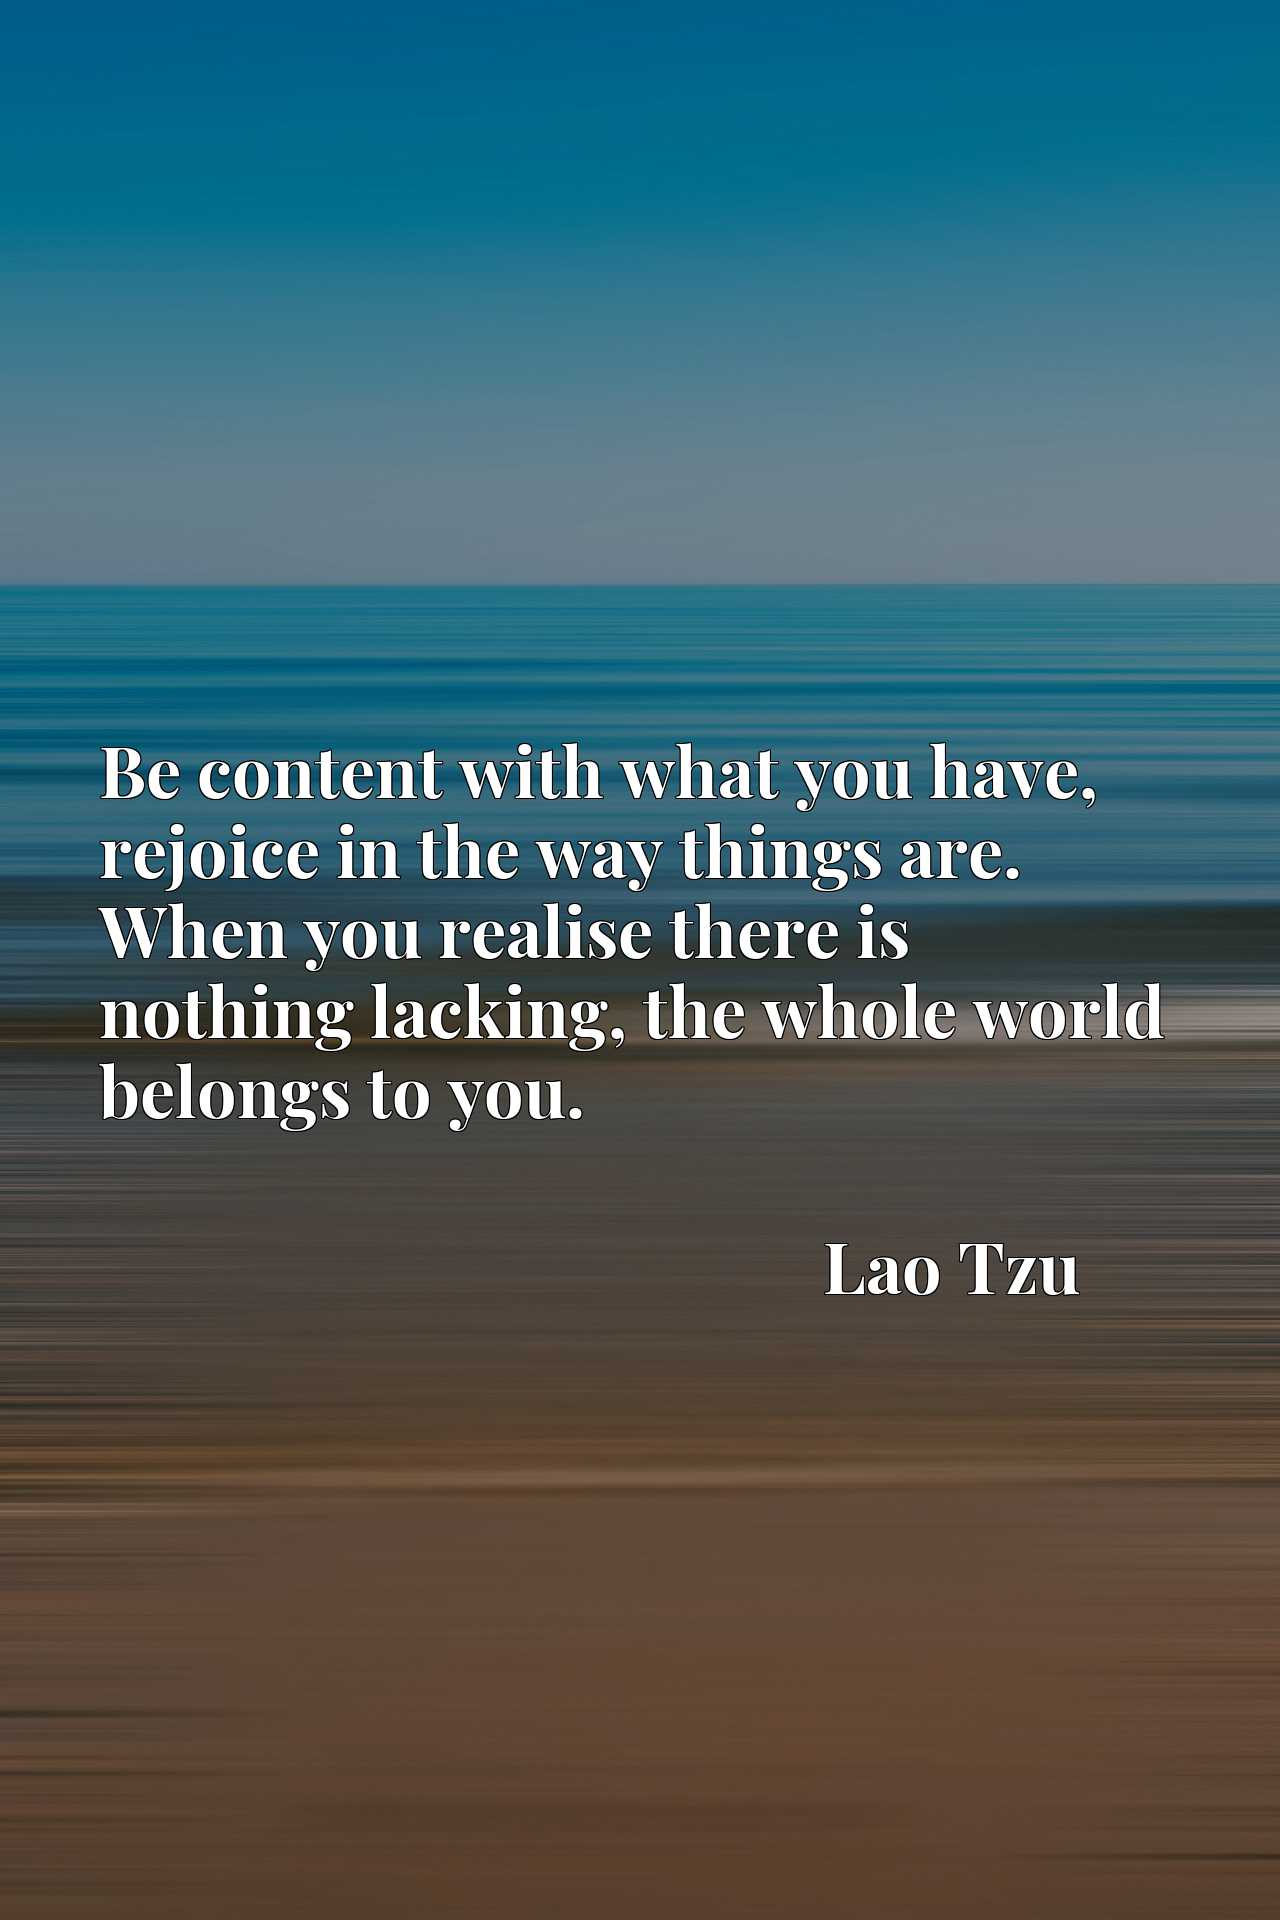 Quote Picture :Be content with what you have, rejoice in the way things are. When you realise there is nothing lacking, the whole world belongs to you.